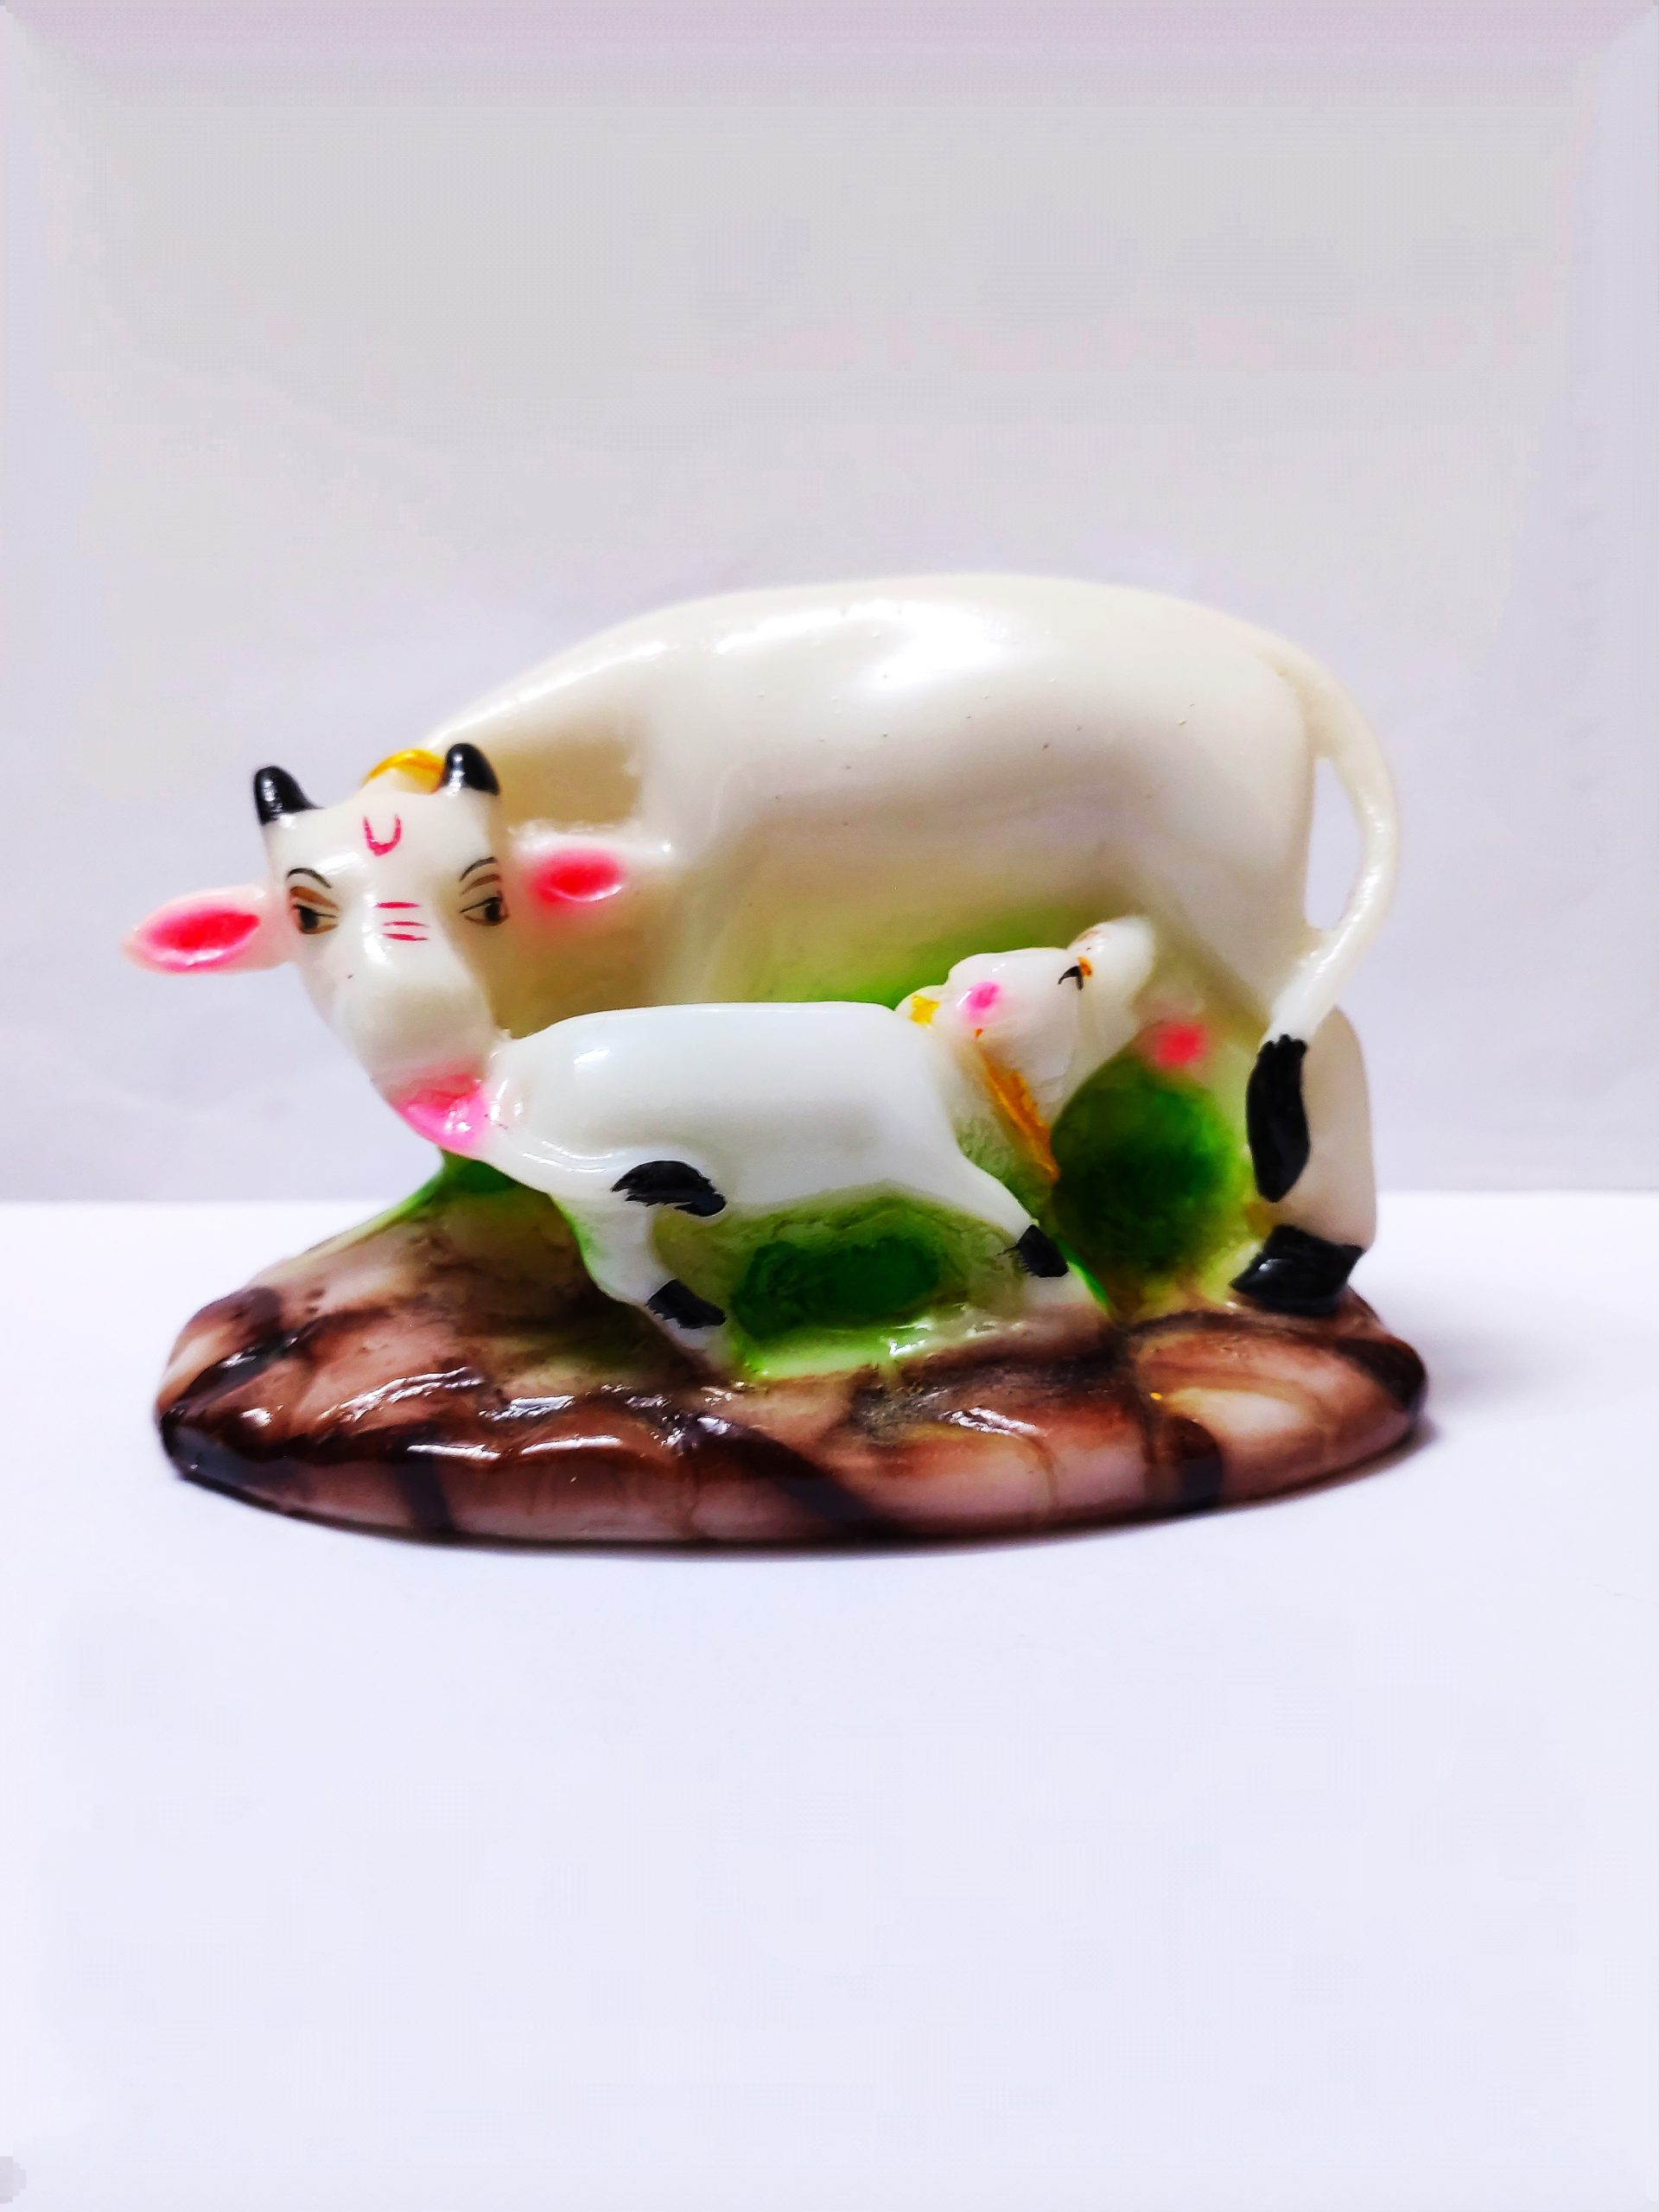 Cow and calf statue